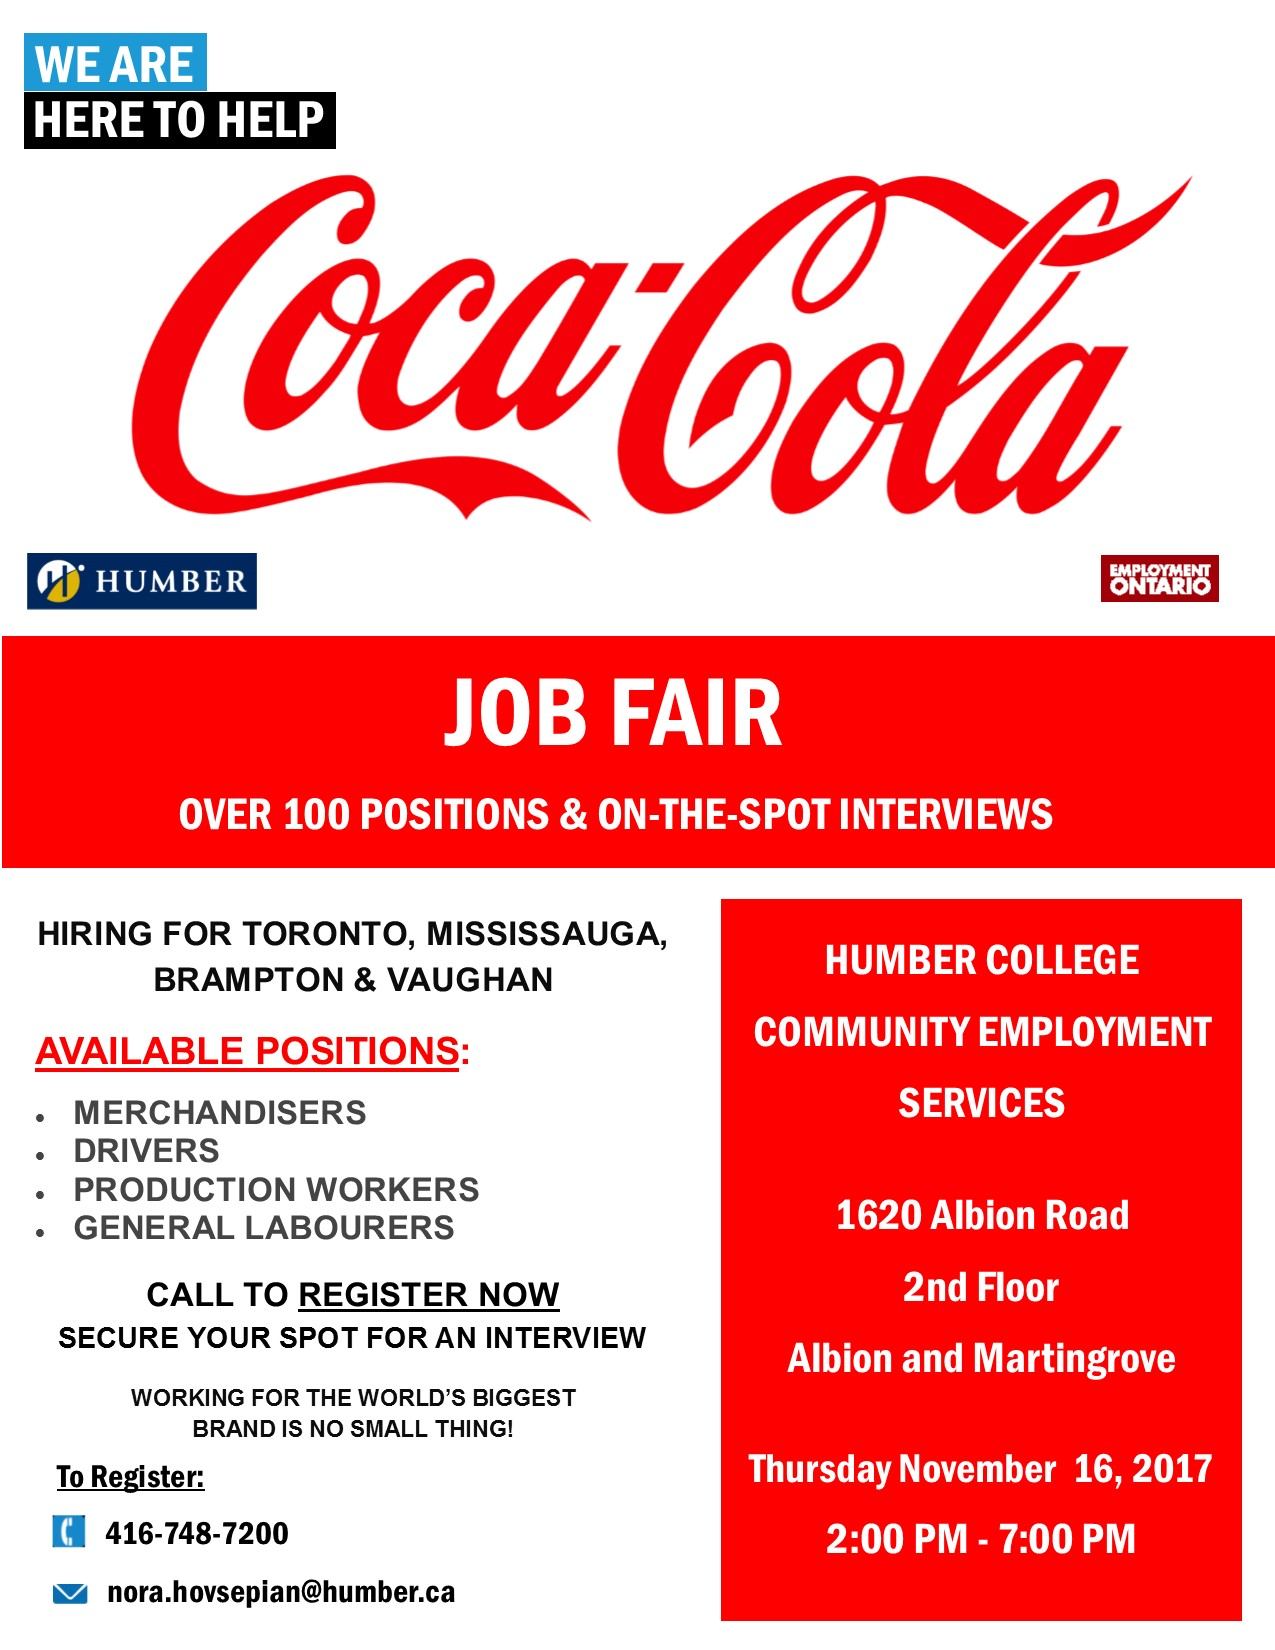 Coca Cola Job Fair